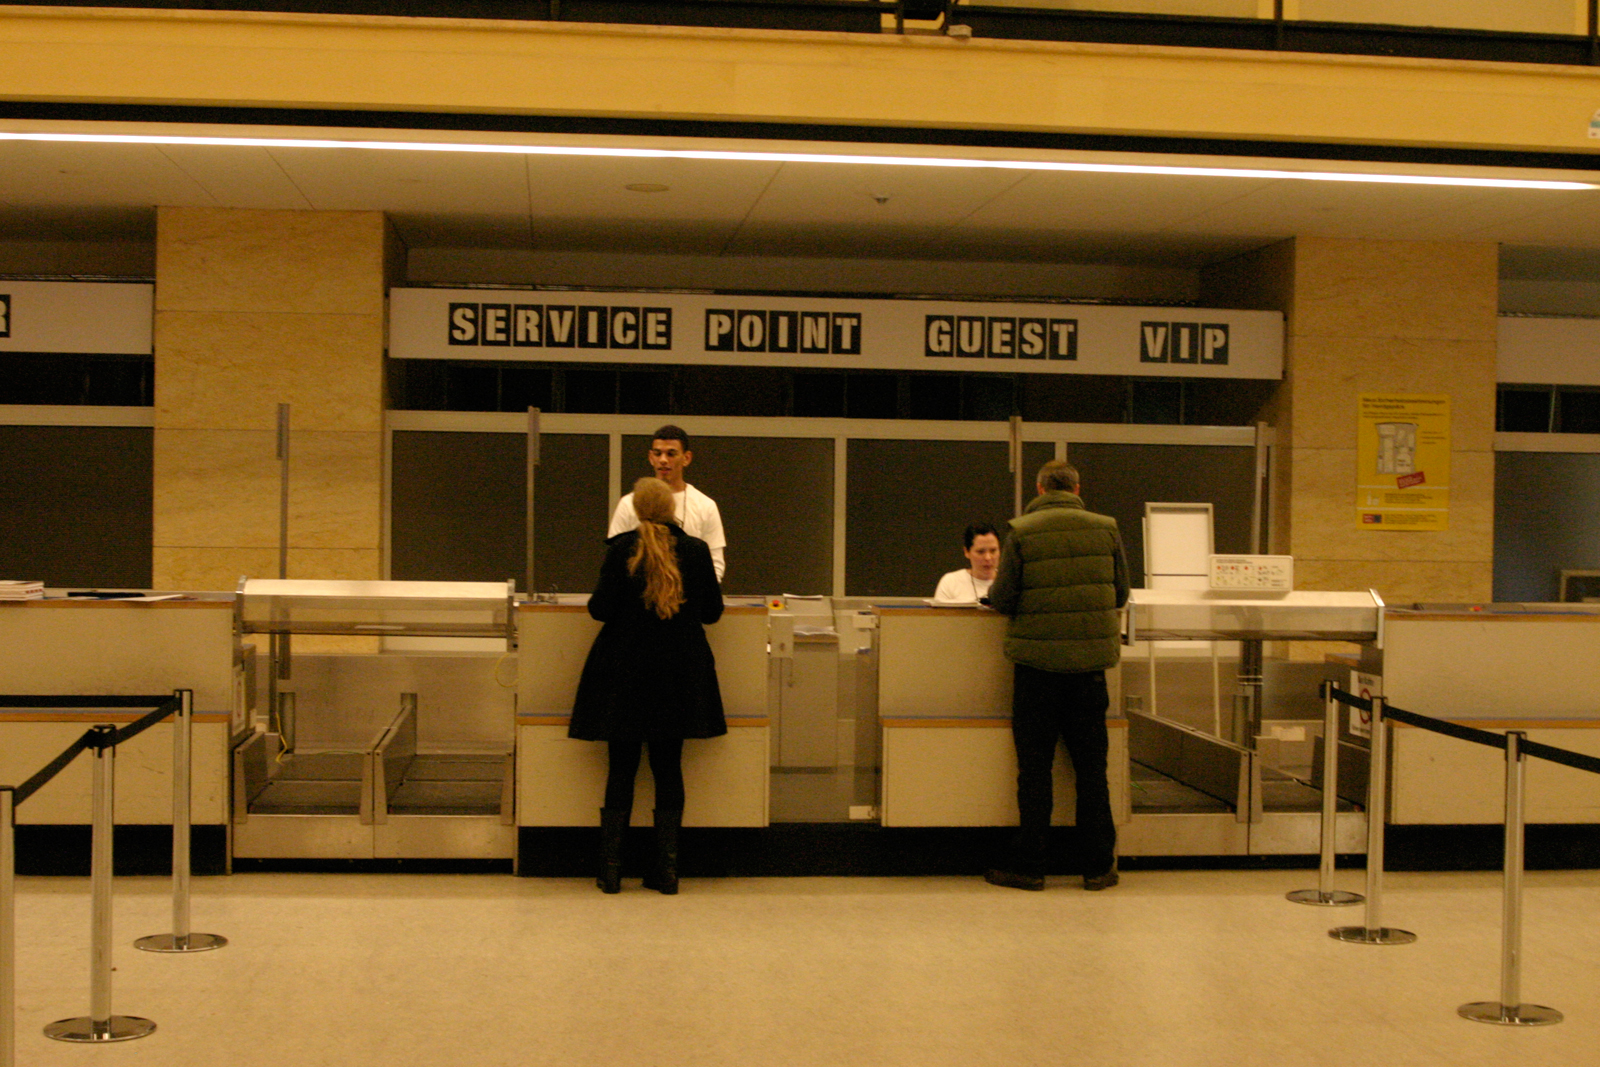 Visitors check in at the old airport check-in stands.